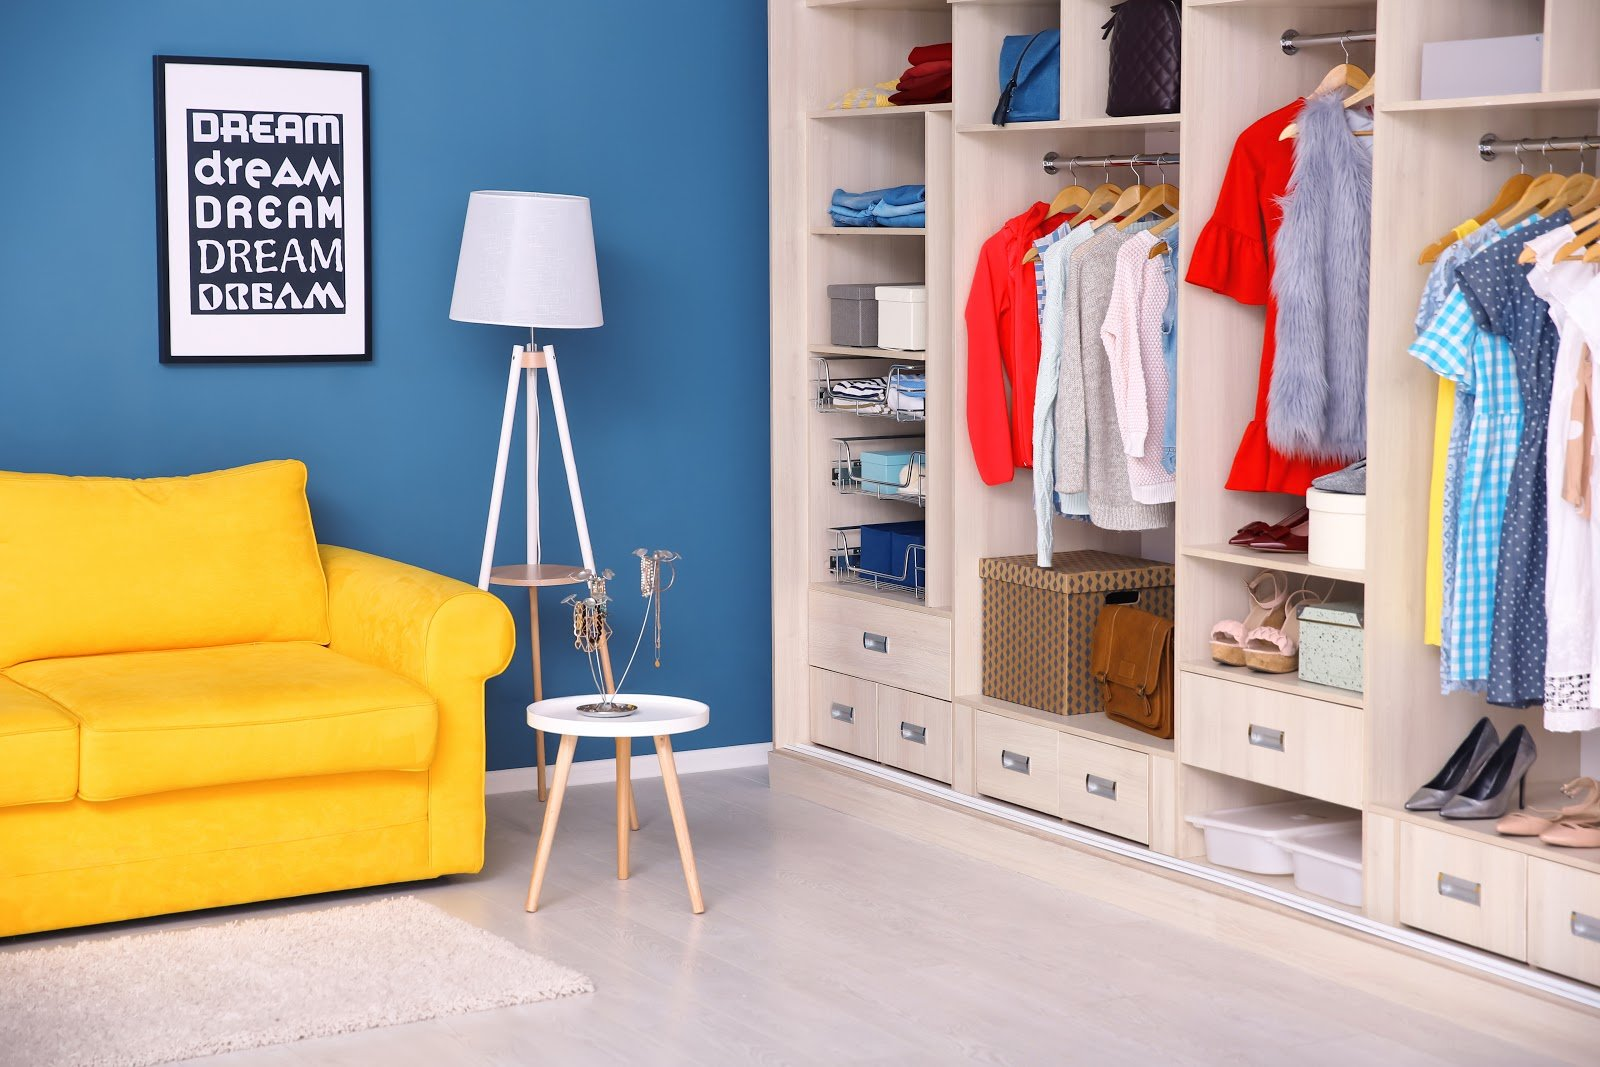 How to Turn a Spare Bedroom Into a Closet